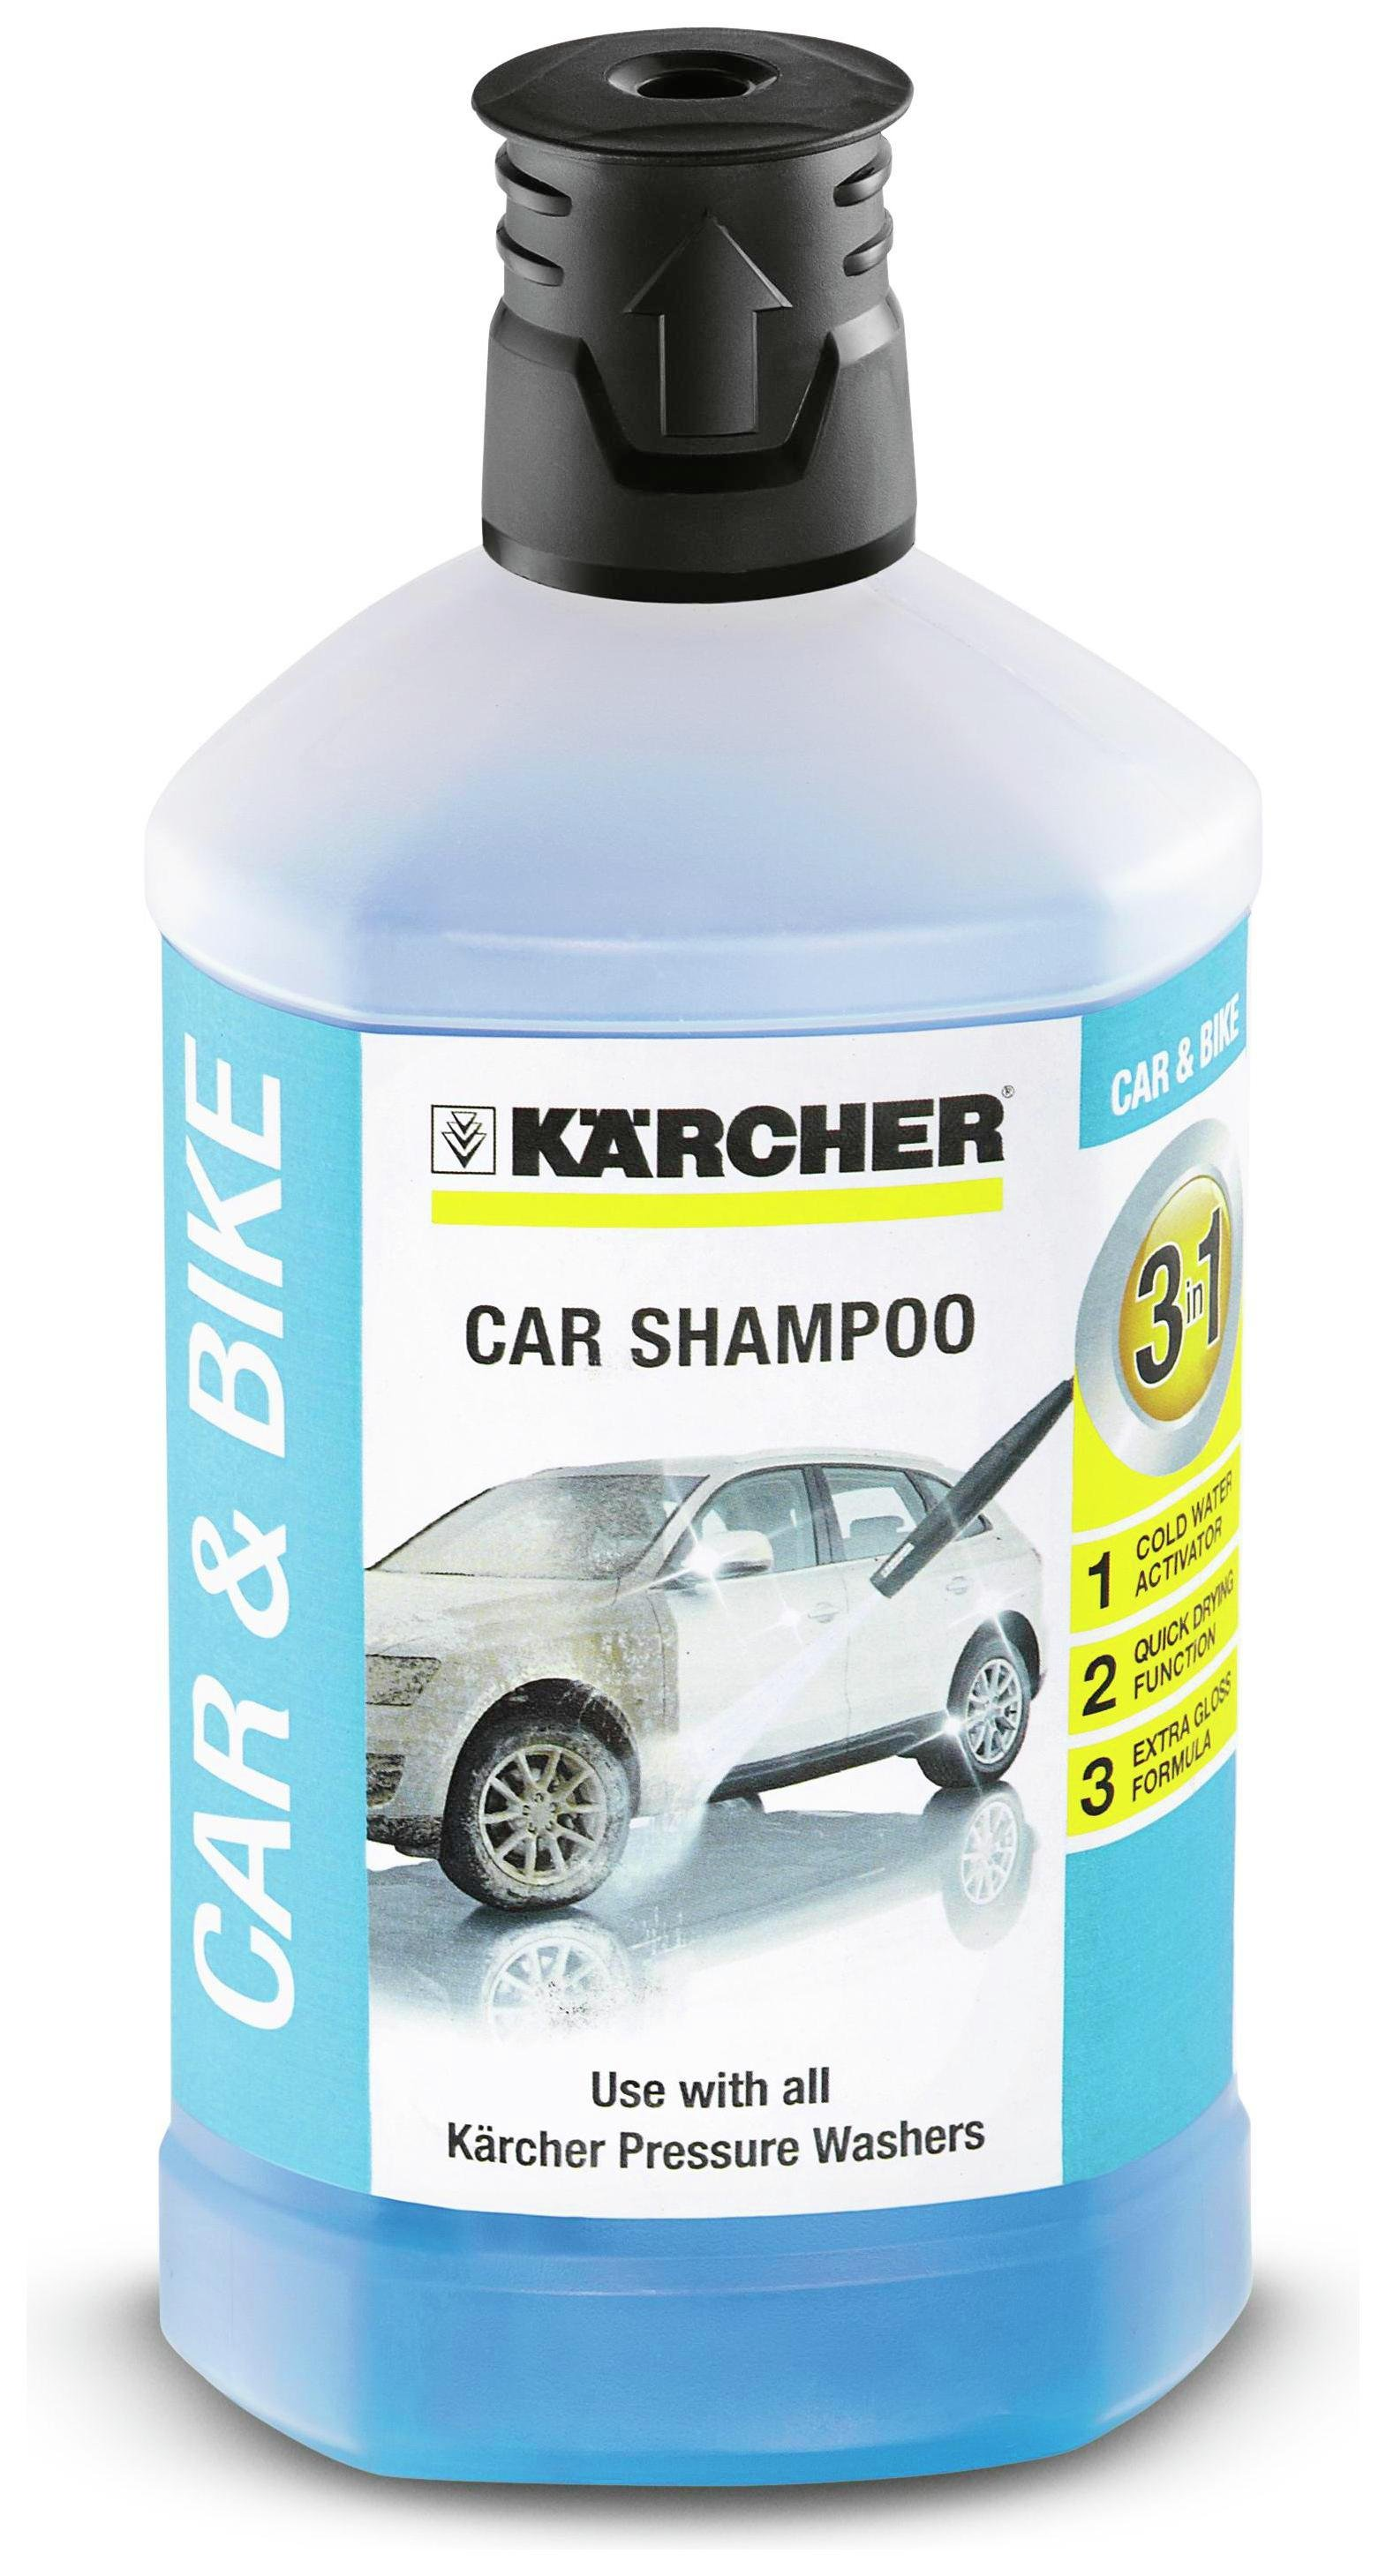 Karcher - Car Shampoo Plug and Clean Detergent at Argos from Karcher